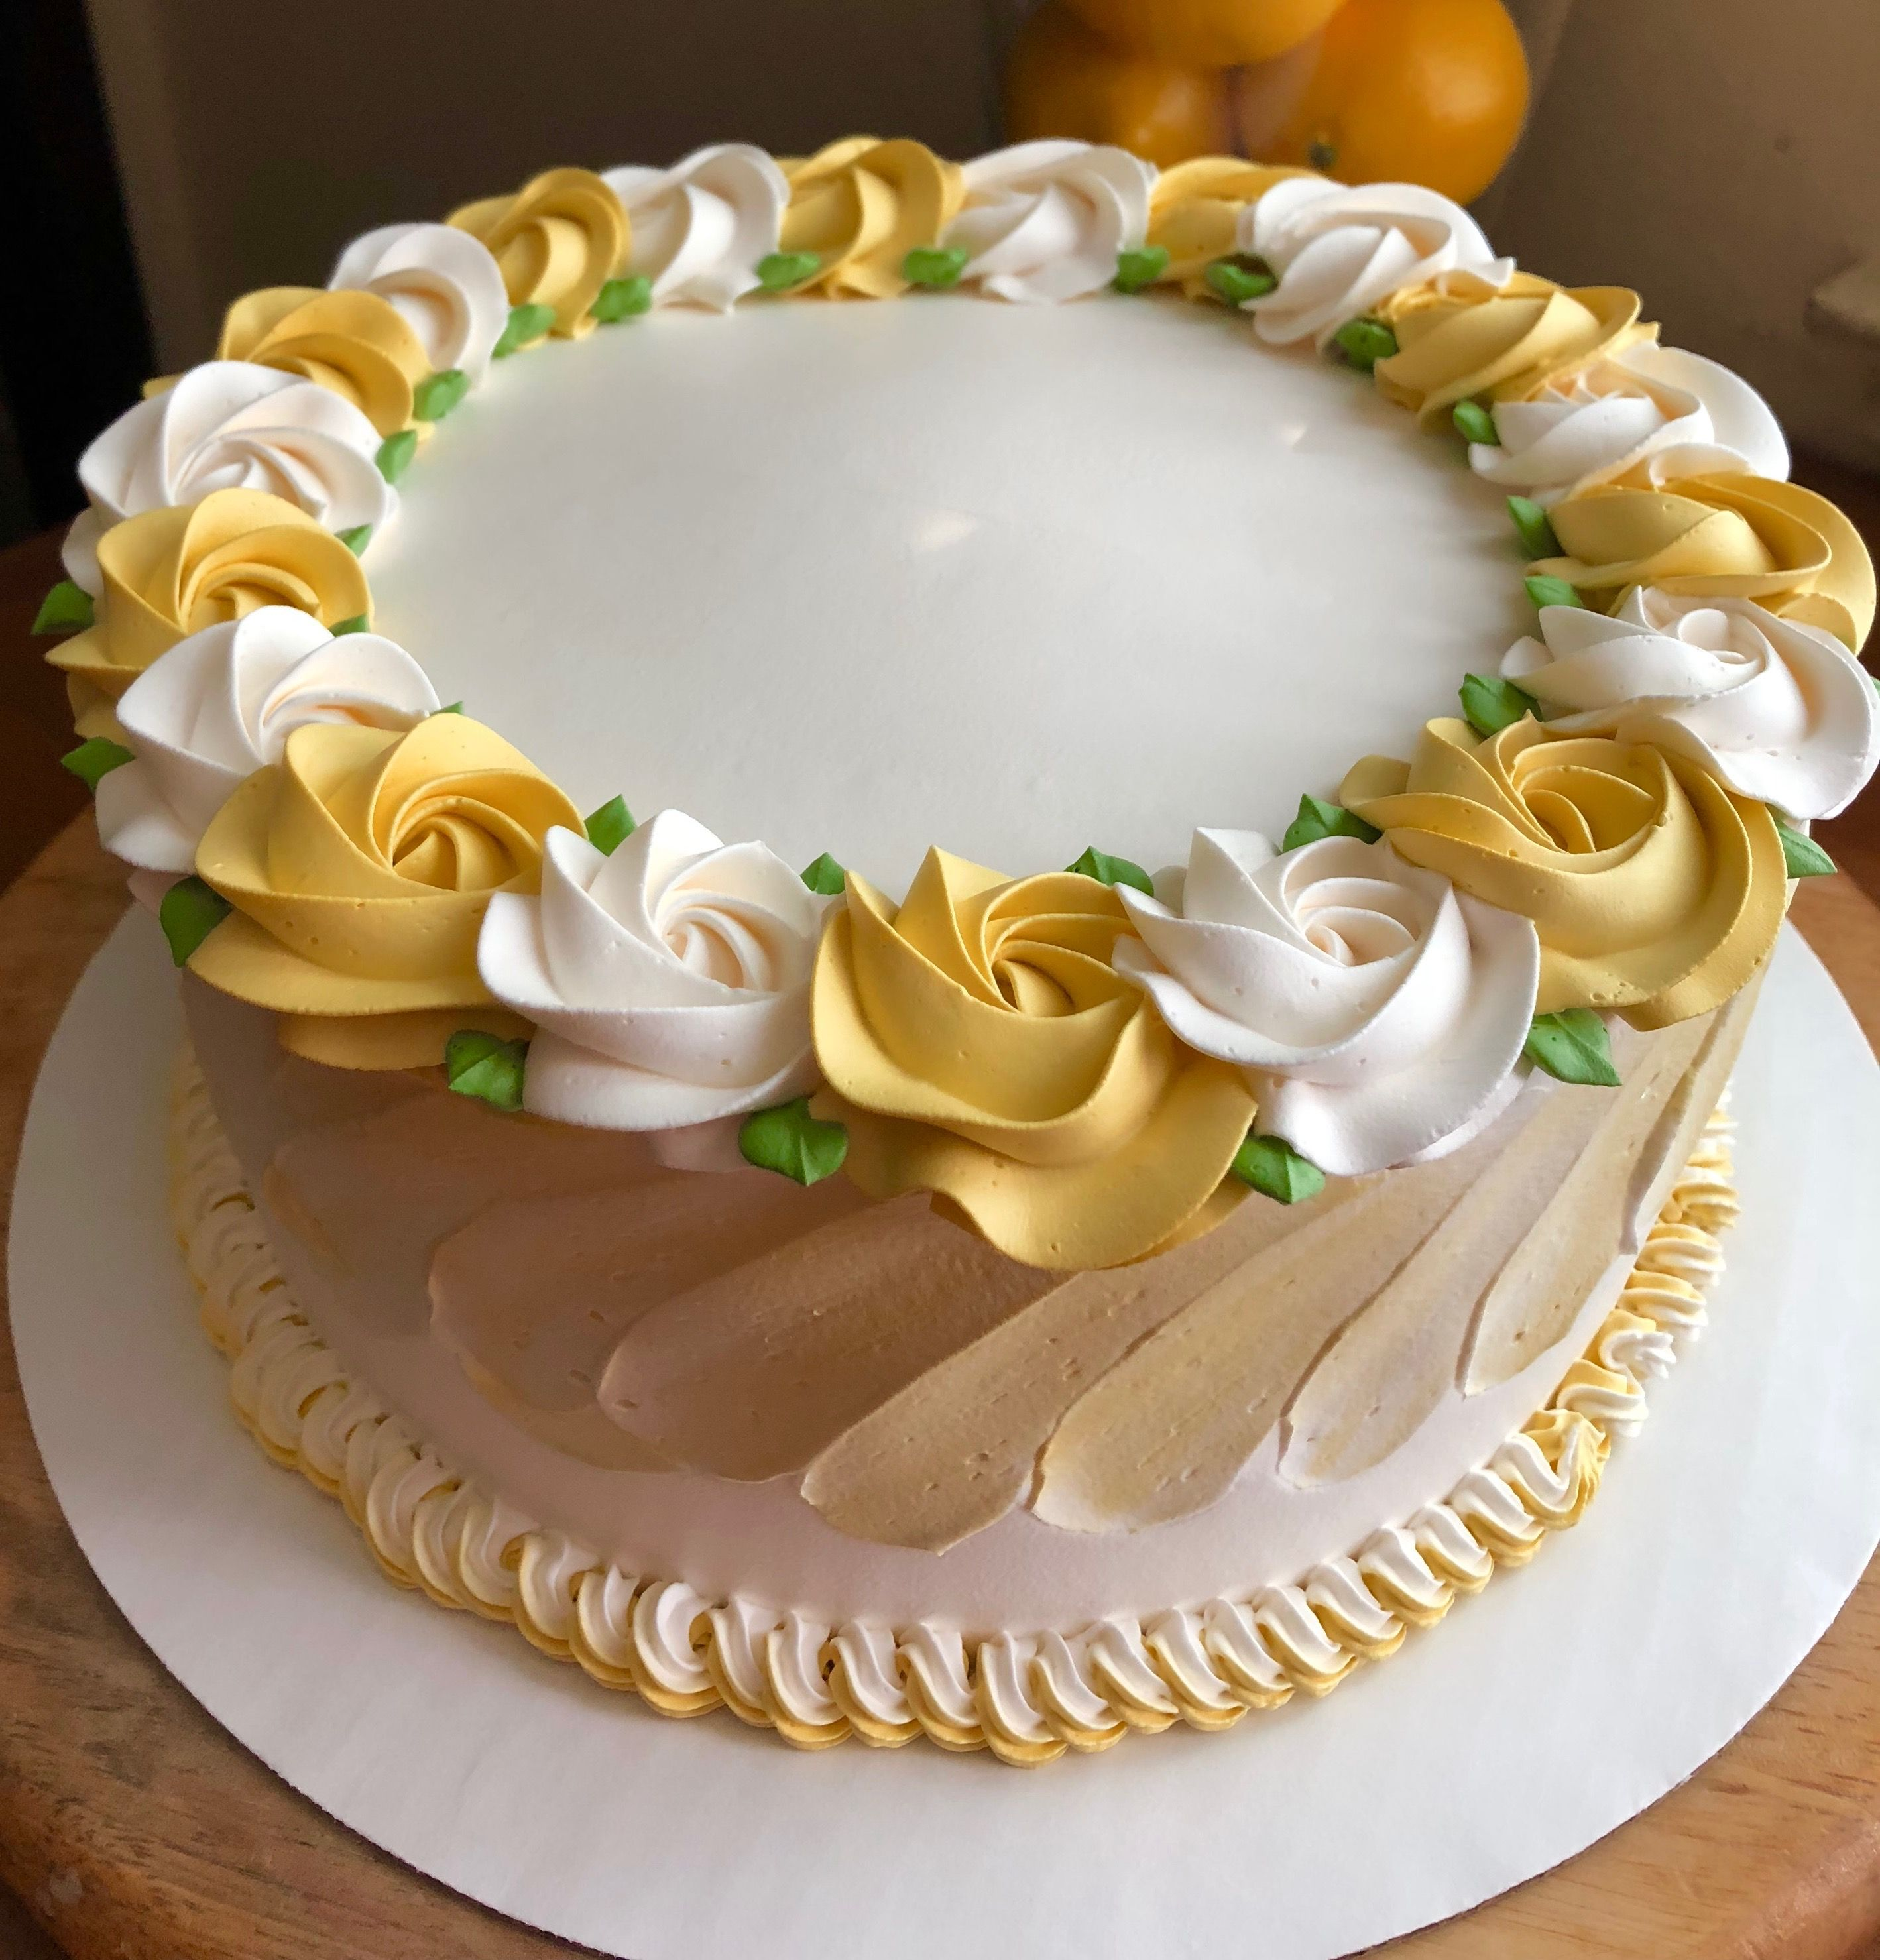 cake decorating videos icing artist Pin by Helene Trippel on Mis Creaciones  Buttercream cake